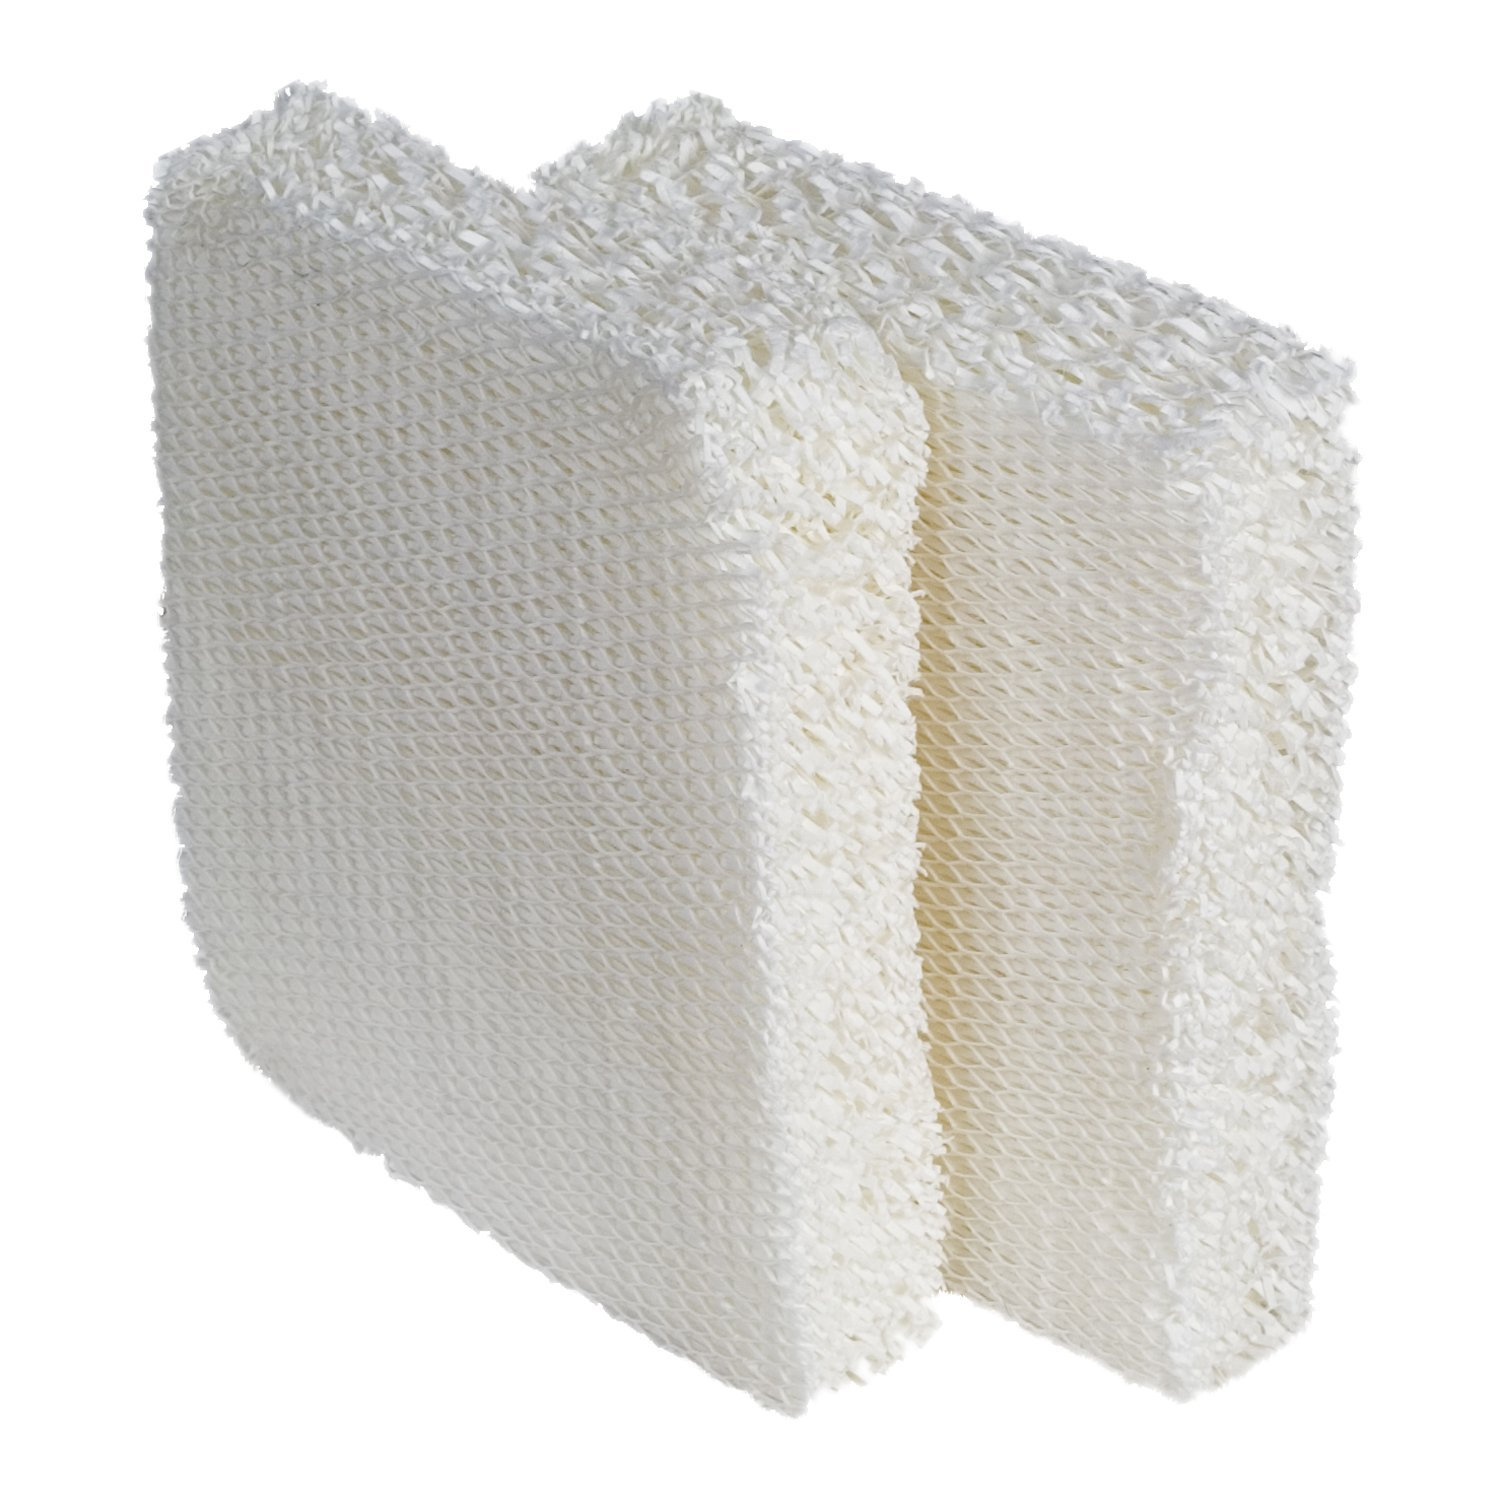 MD1-1002 Humidifier Replacement Wick Filter by Vornado VORNADO-MD1-1002